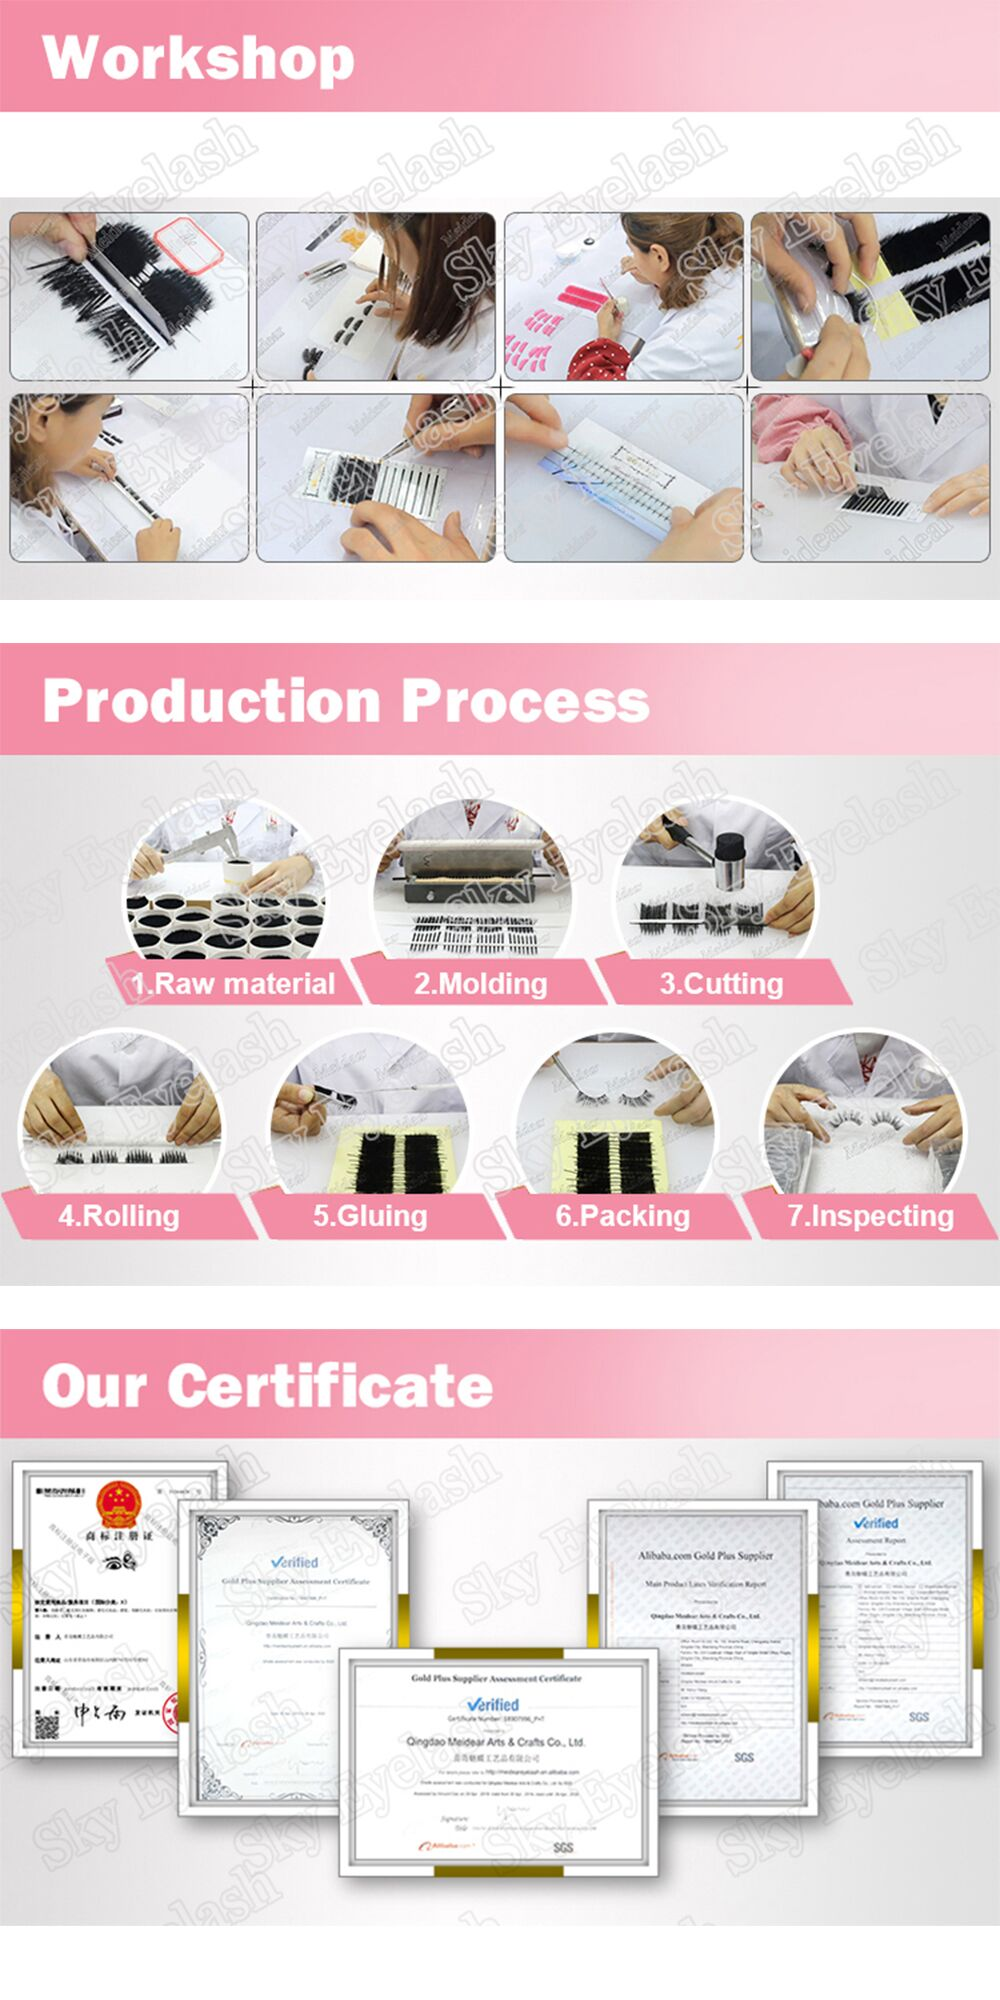 Wholesale-false-lashes-vendor-handmade-cruelty-free-mink-eyelash-3D-packing-with-customized-package.jpg